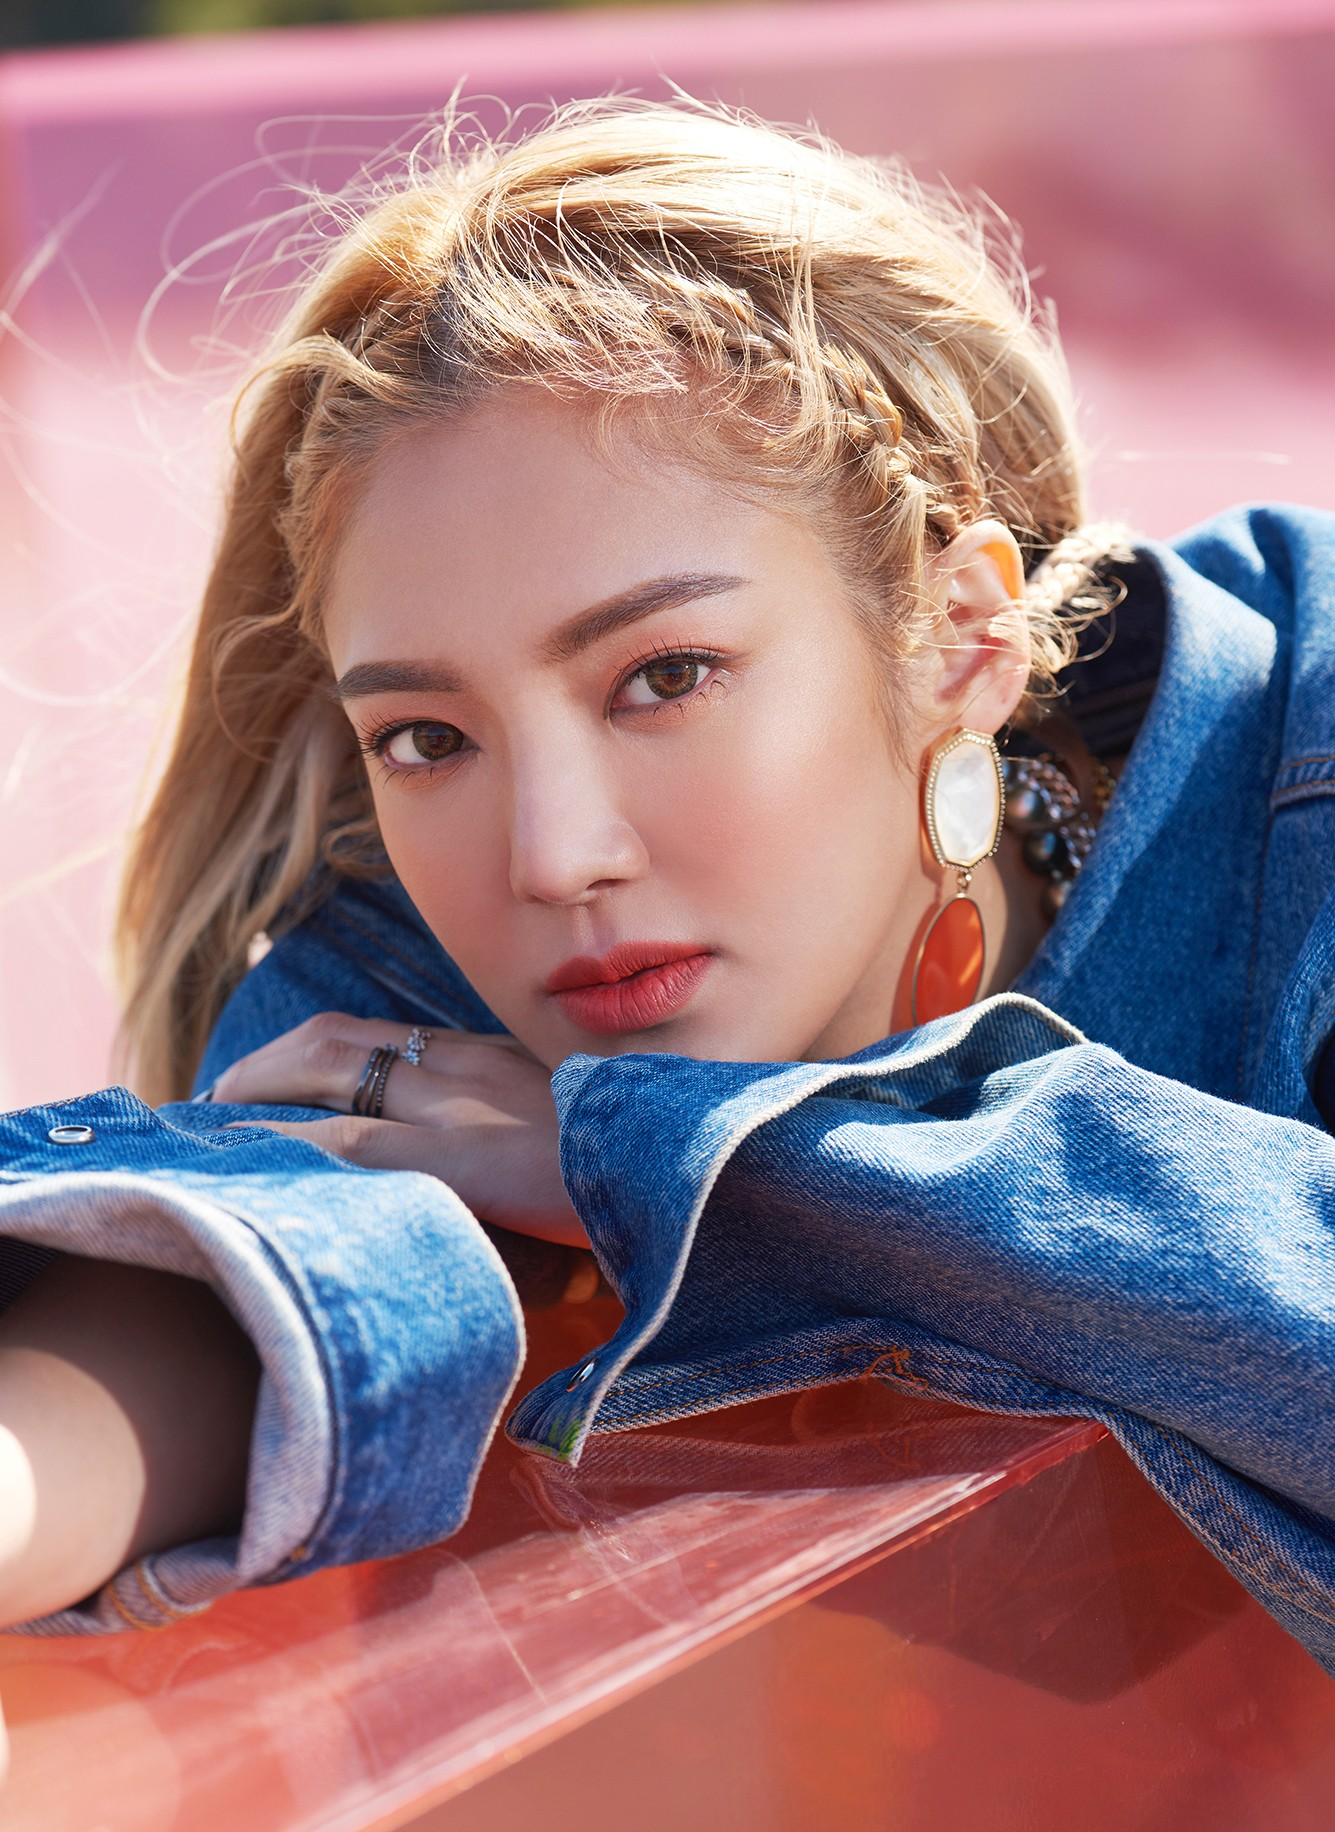 SM and Hyoyeon respond to the publication mentioning she as the DJ of the Burning Sun event in 2018